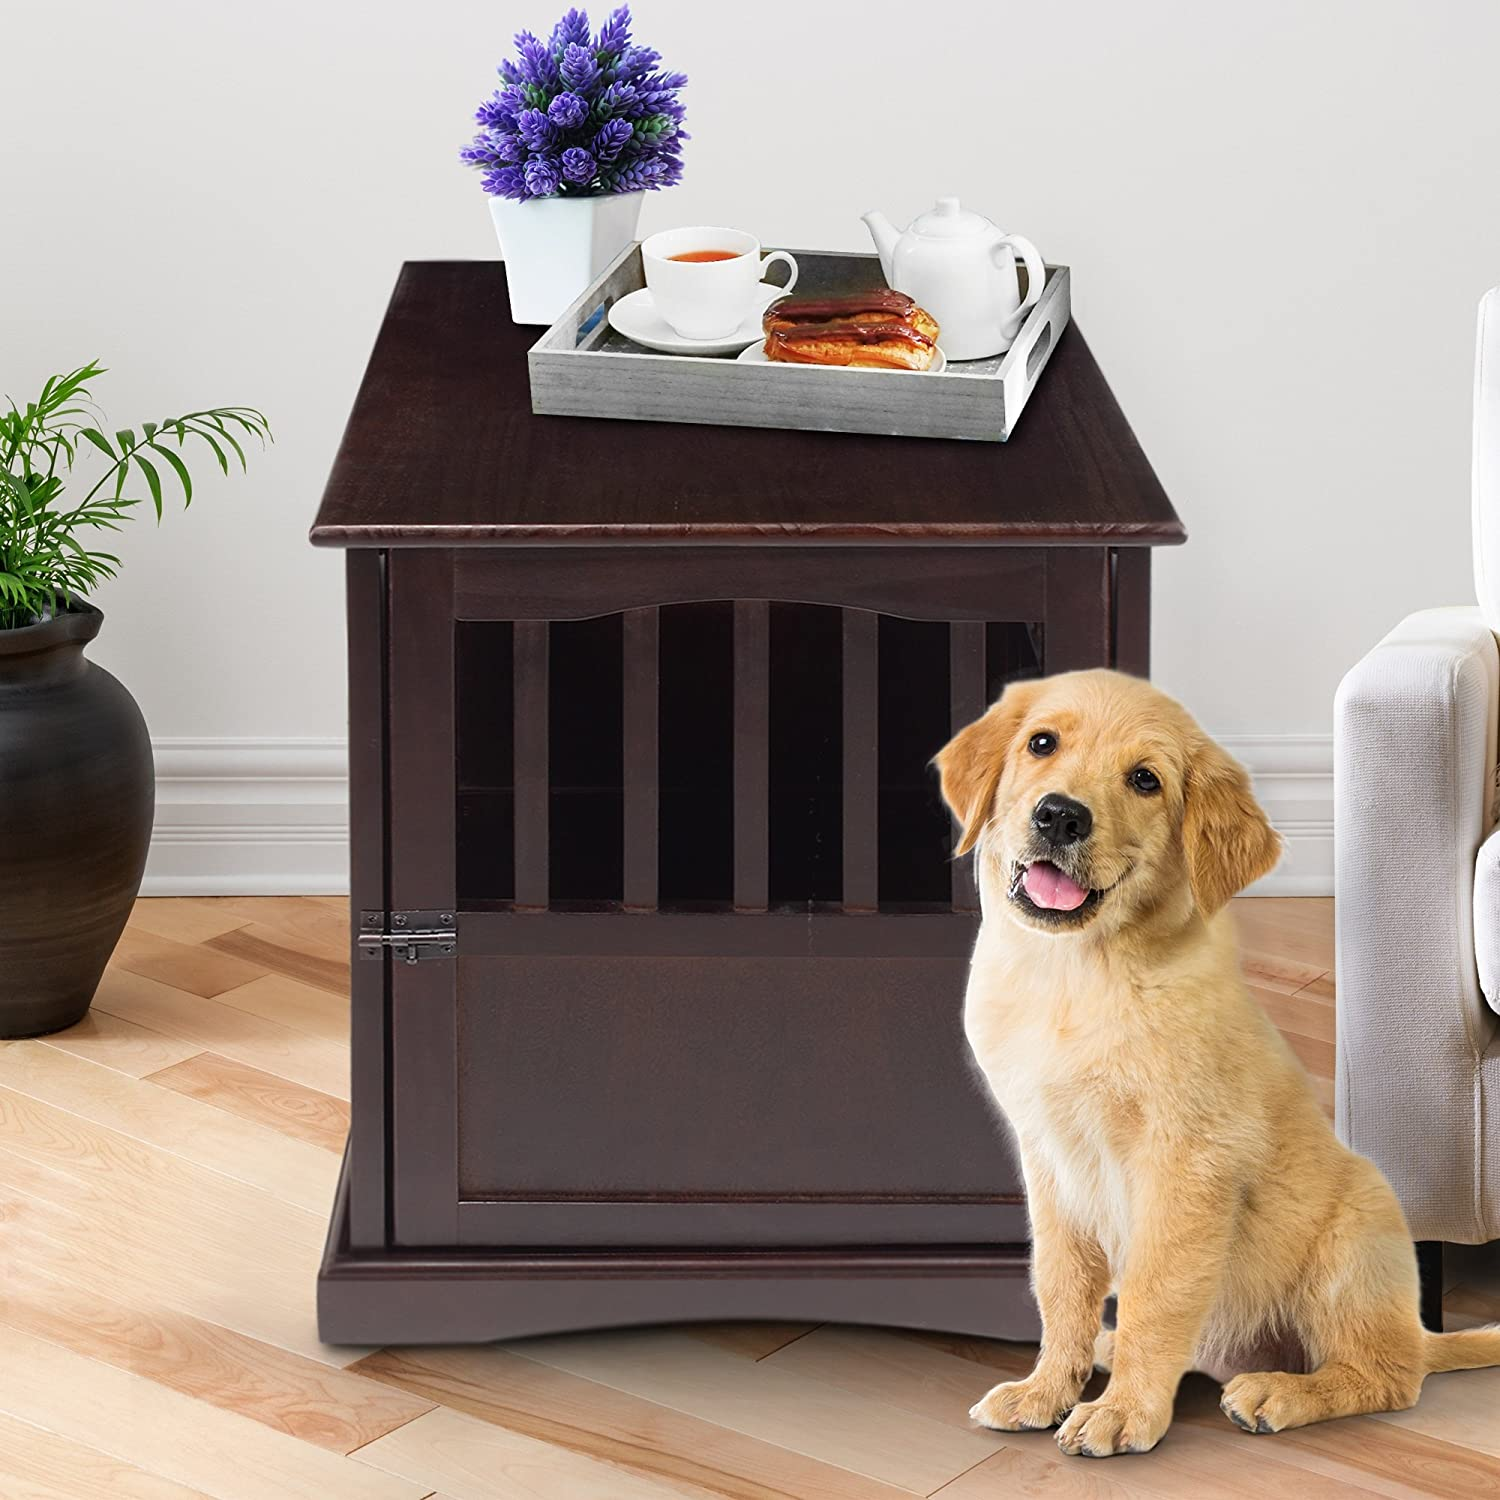 casual home  pet crate end table inch amazonca home  - casual home  pet crate end table inch amazonca home  kitchen